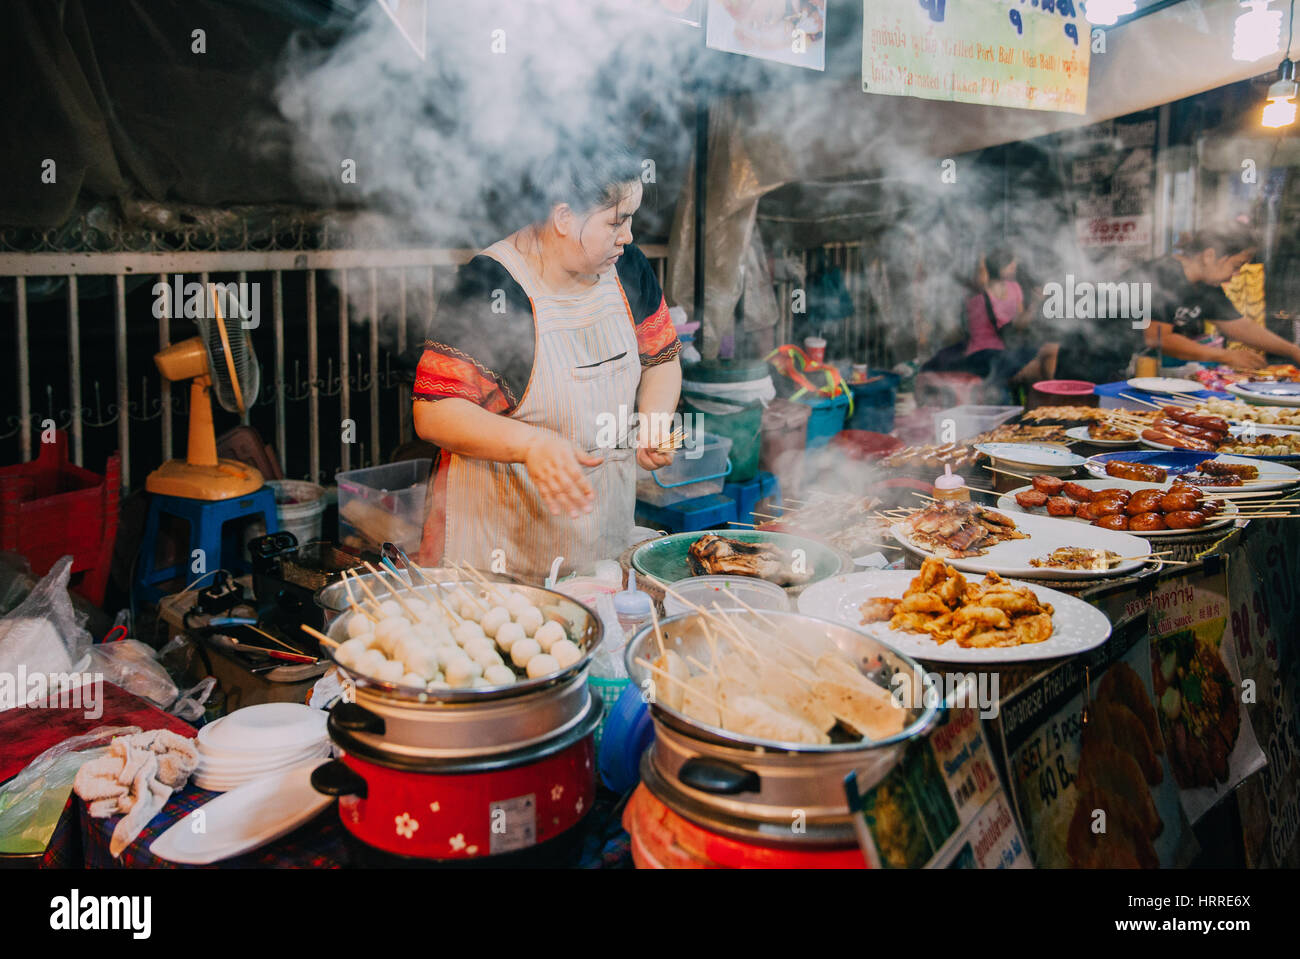 Chiang Mai, Thailand - August 27, 2016:  Thai woman cooks food for sale at the Saturday Night Market on August 27, - Stock Image